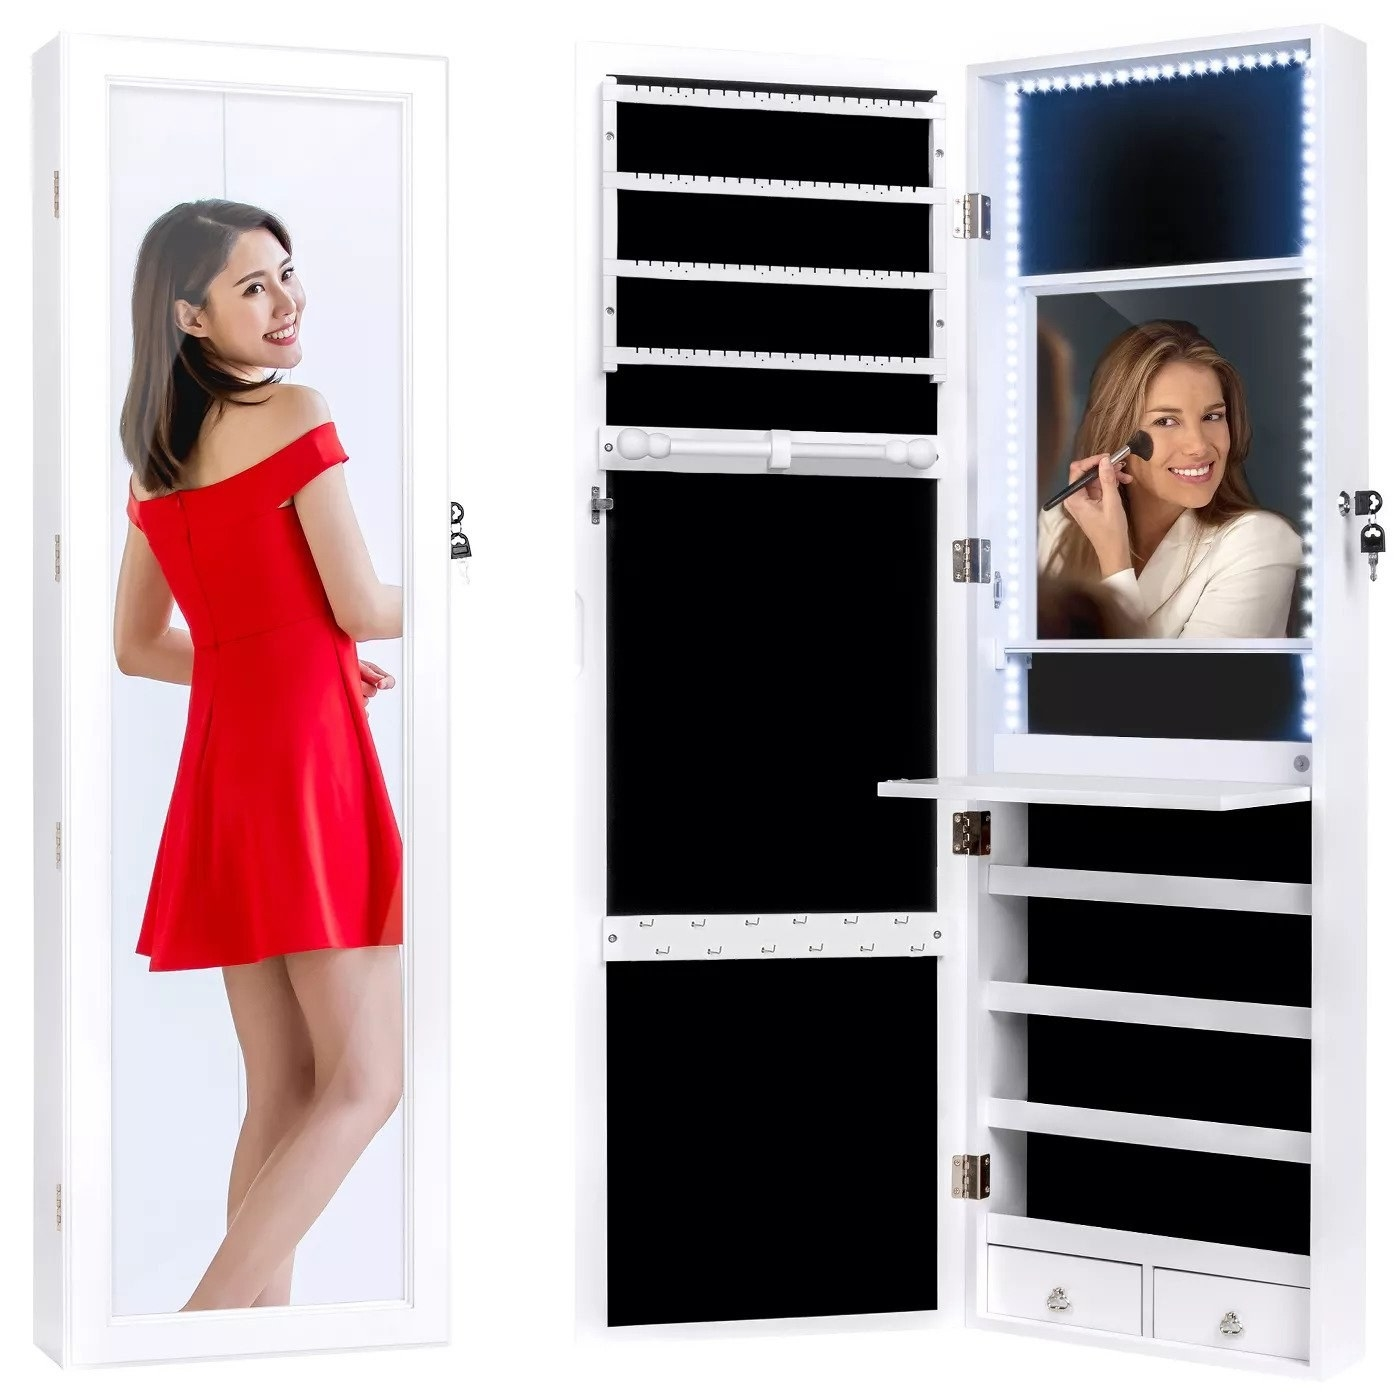 Model using mirror to see herself and do makeup; also showing off inside of jewelry organizer